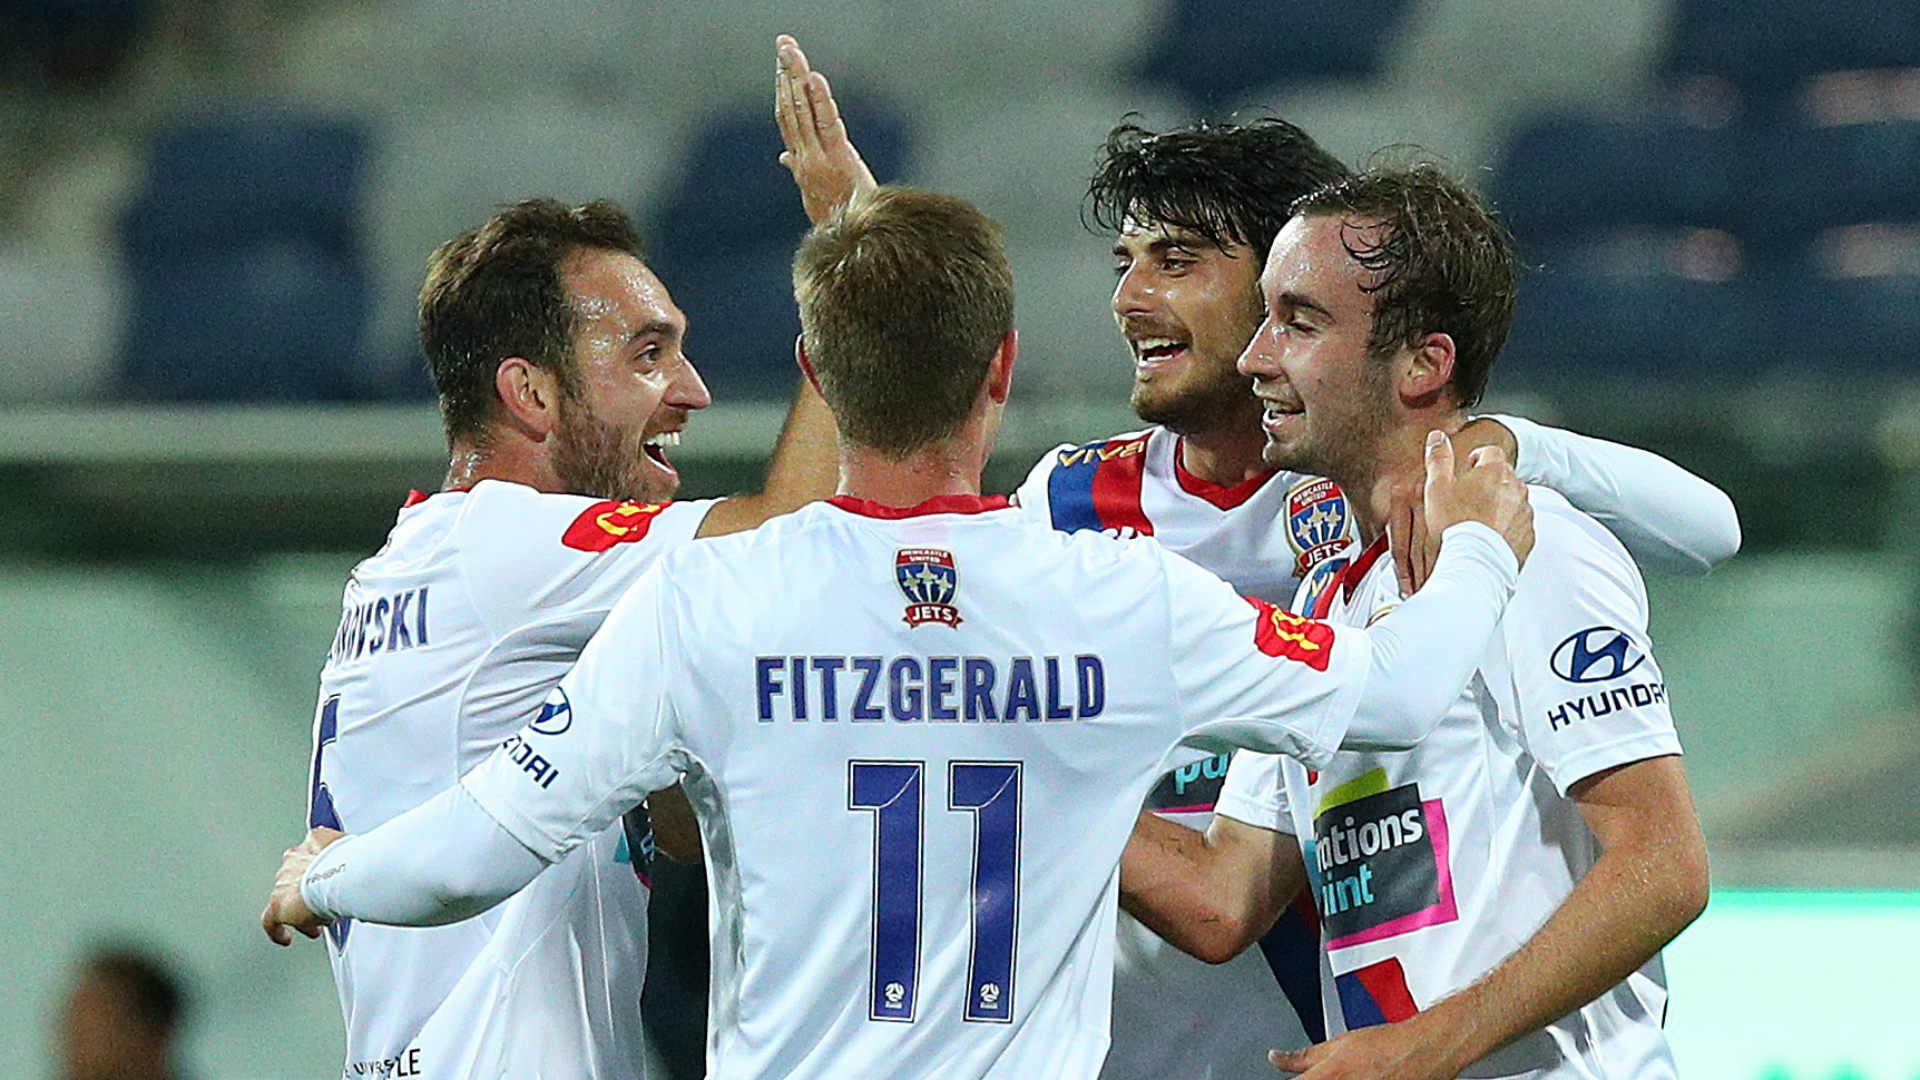 A-League Review: Newcastle Jets edge Western United, Adelaide overwhelm Central Coast Mariners - Sporting News AU